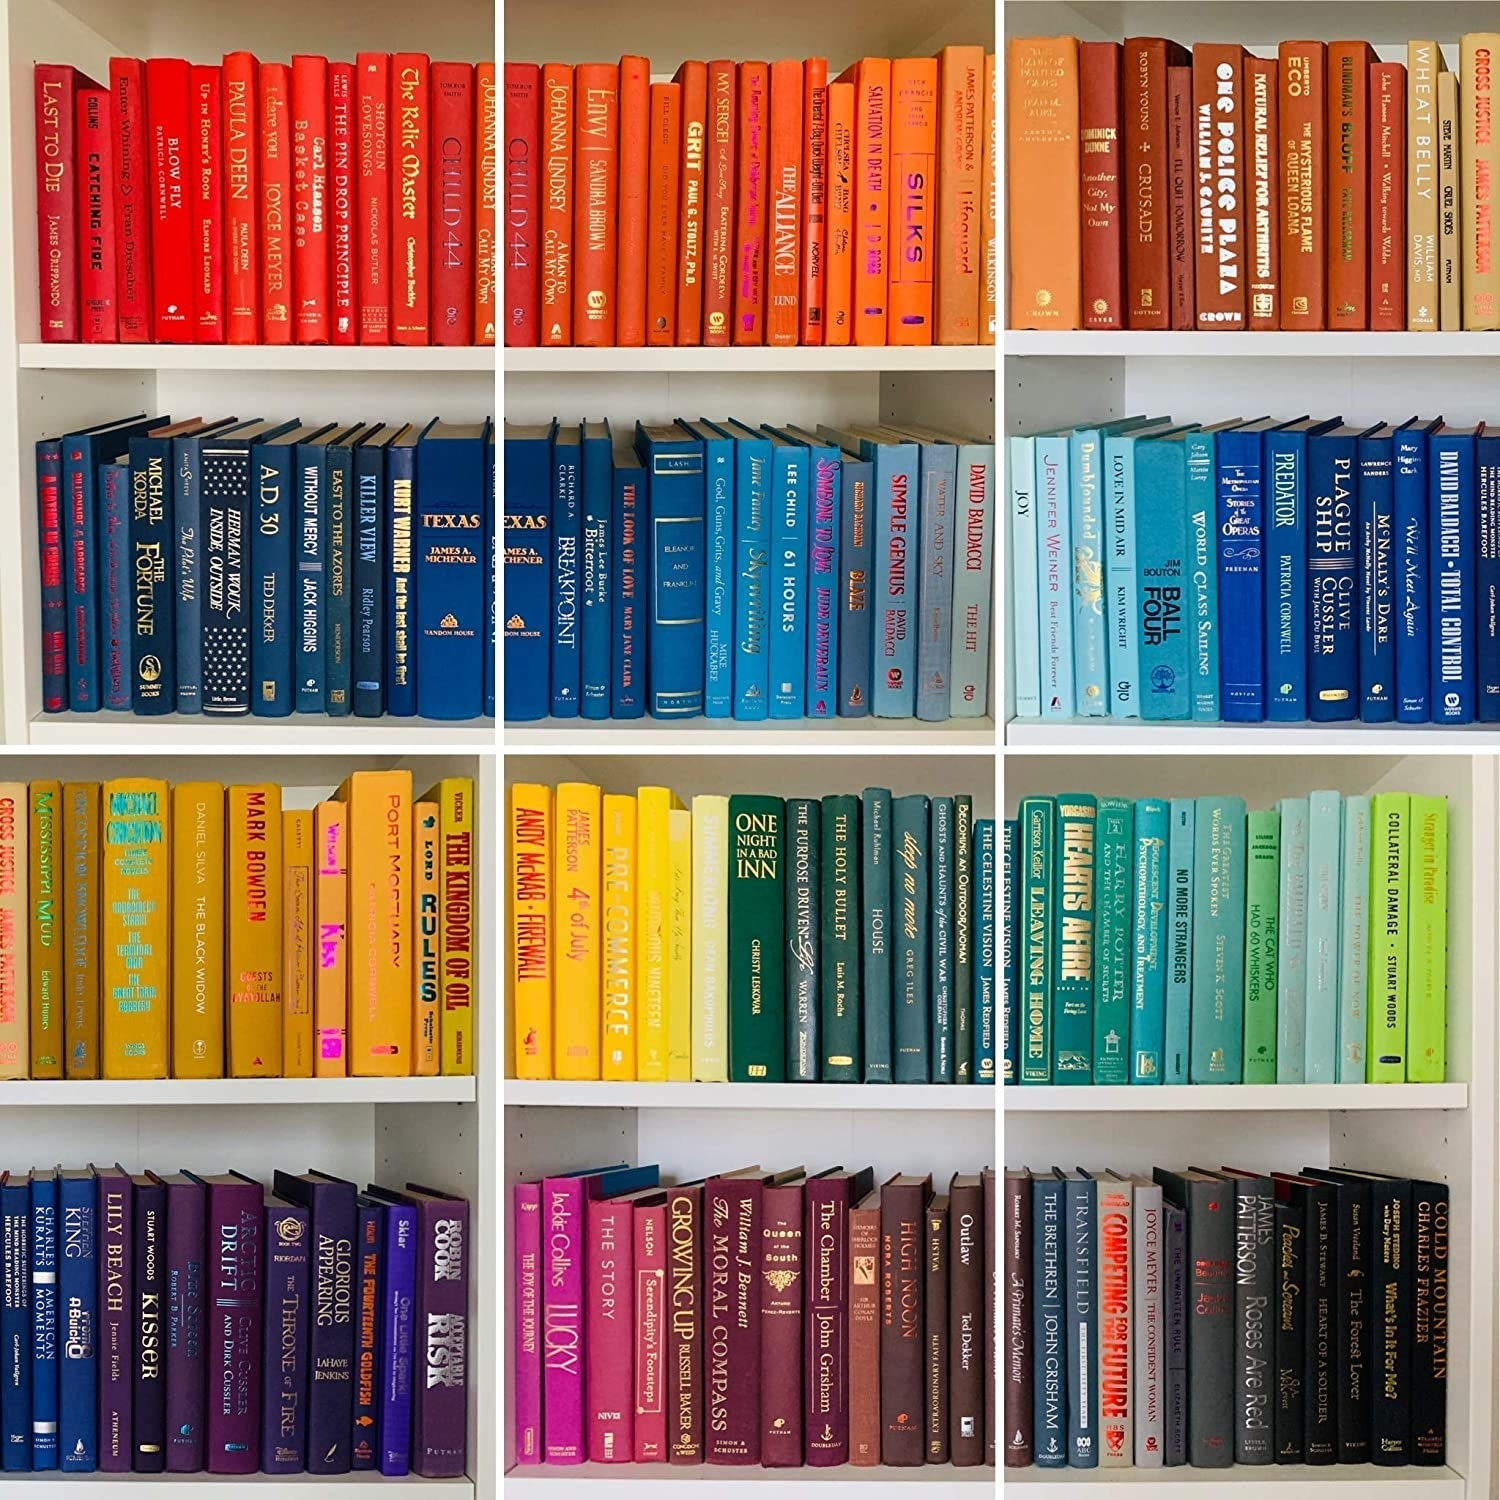 Shelves of color-coordinated books